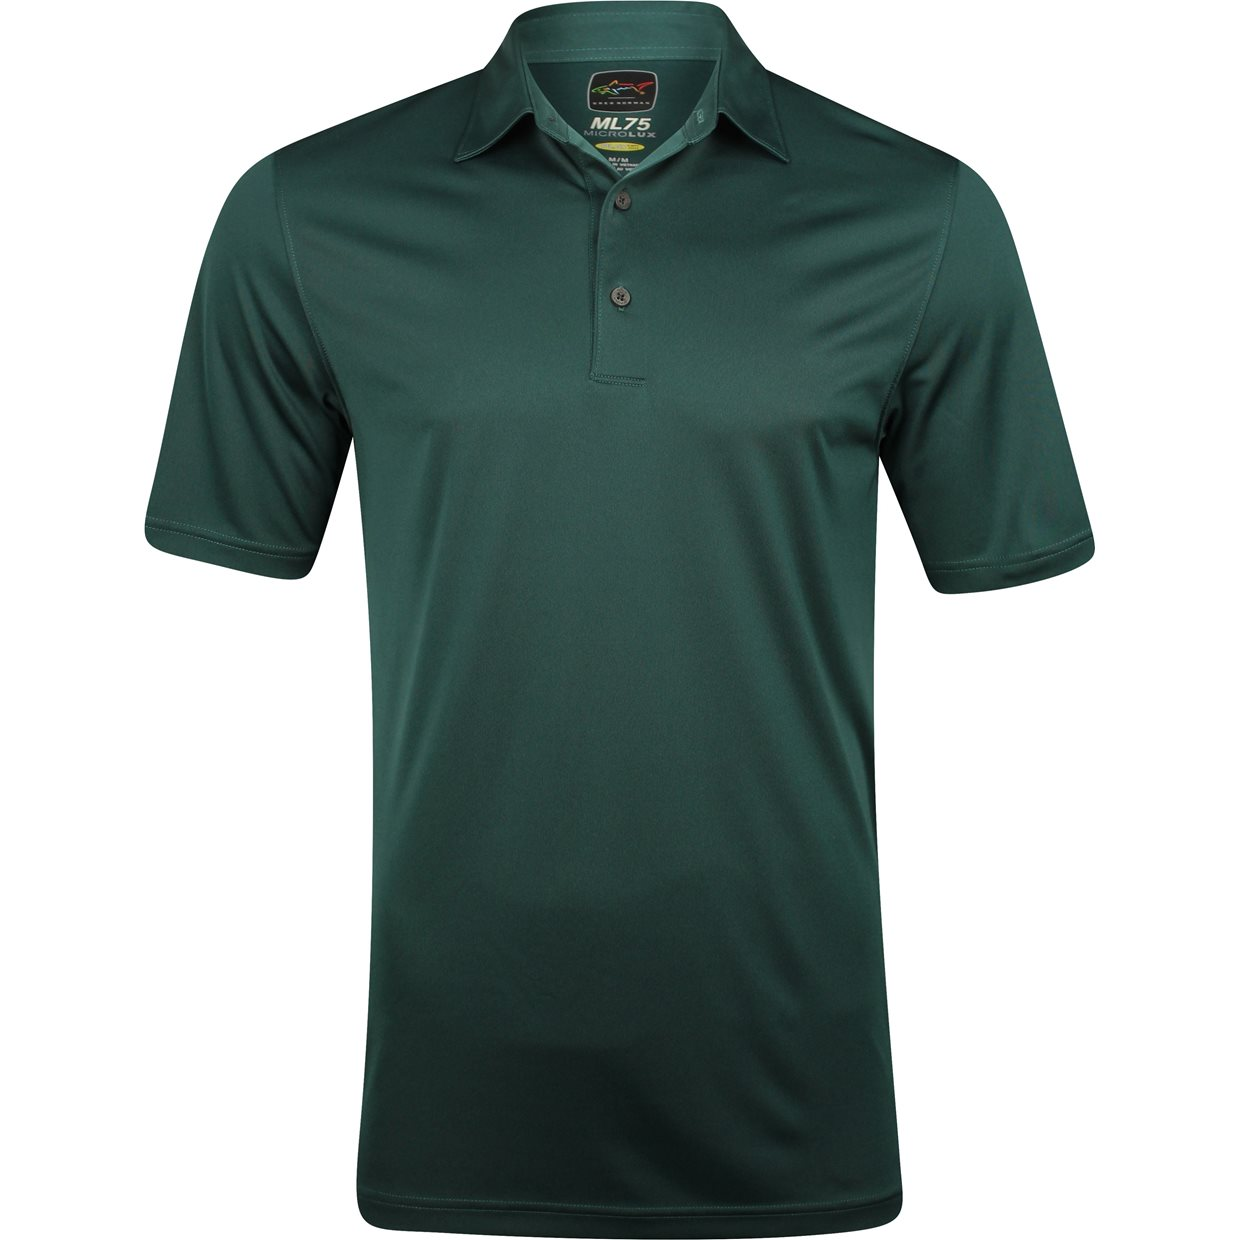 Greg norman protek ml75 microlux solid shirt apparel at for Greg norman ml75 shirts